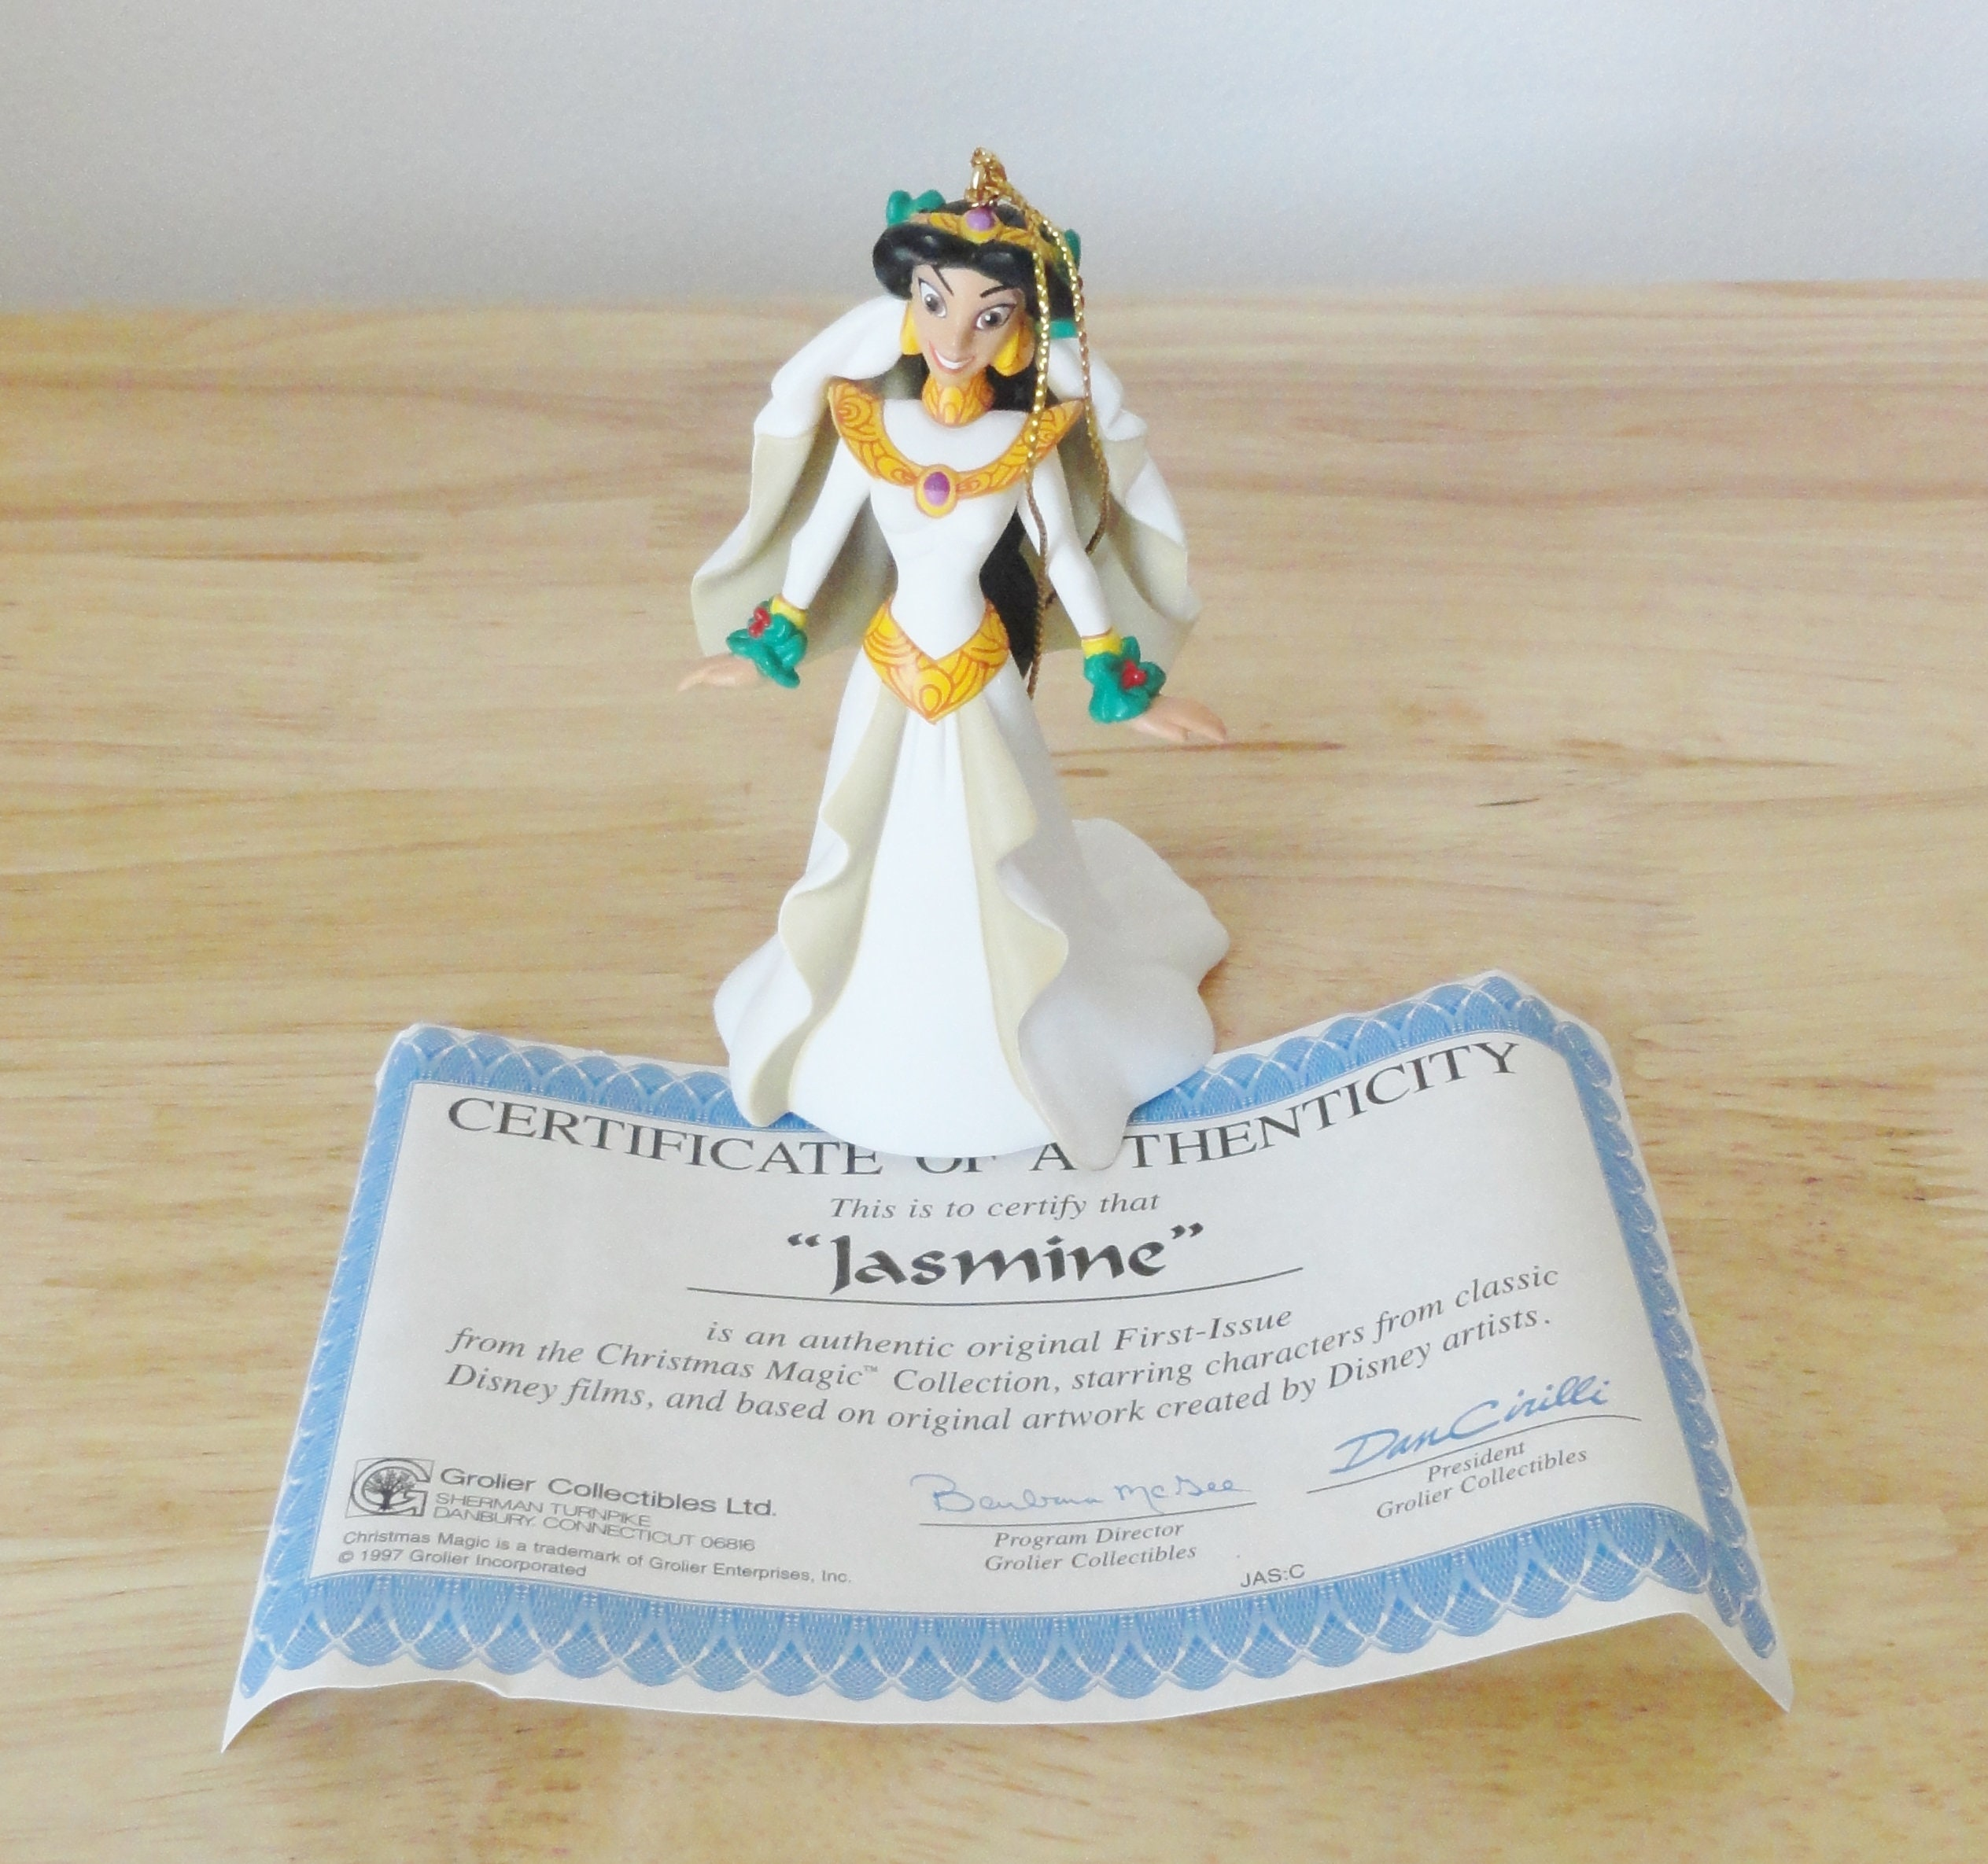 First Issue Vintage Christmas Collectable Disney S Aladdin The King Of Thieves Jasmine Ornament Grolier